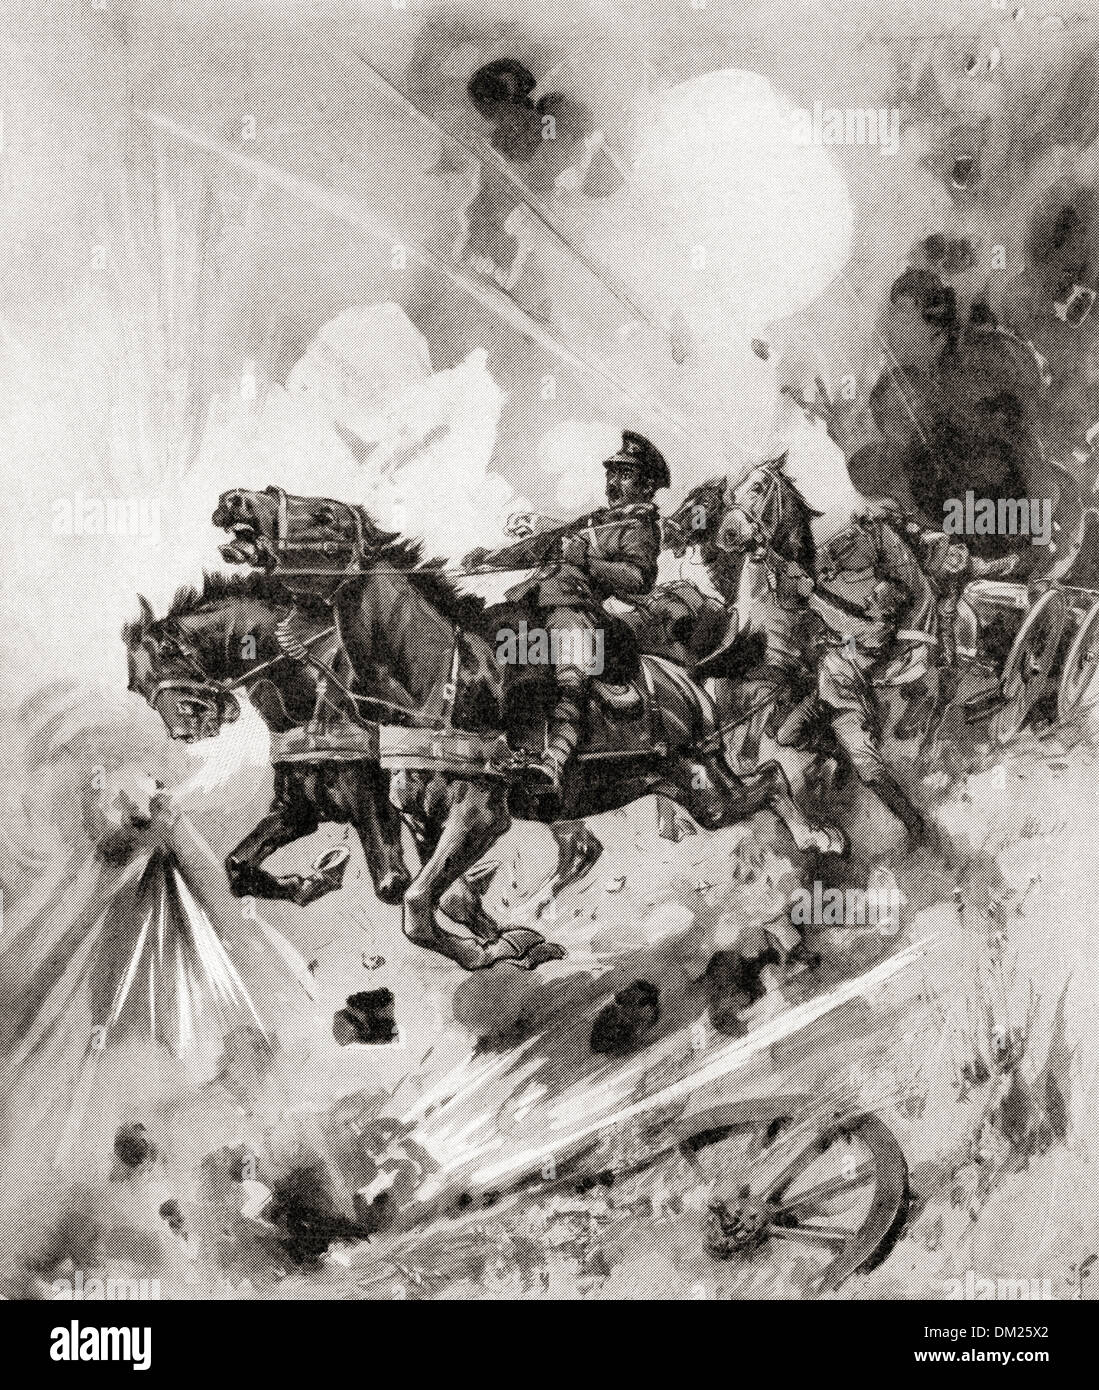 A team of horses from a British battery stampede in fright from bursting German shells during WWI. - Stock Image